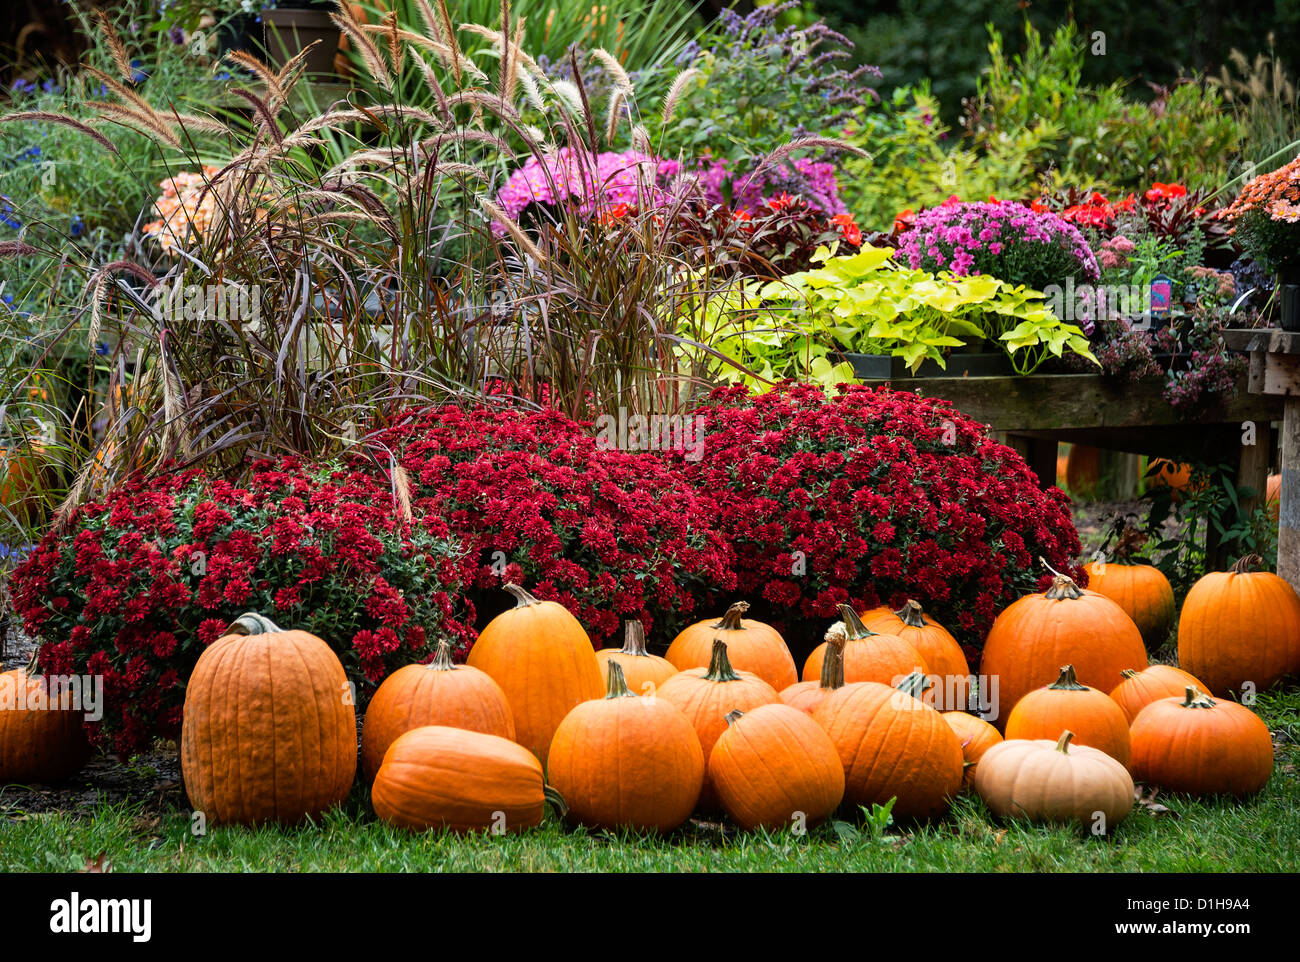 Harvest display at a farmers market - Stock Image